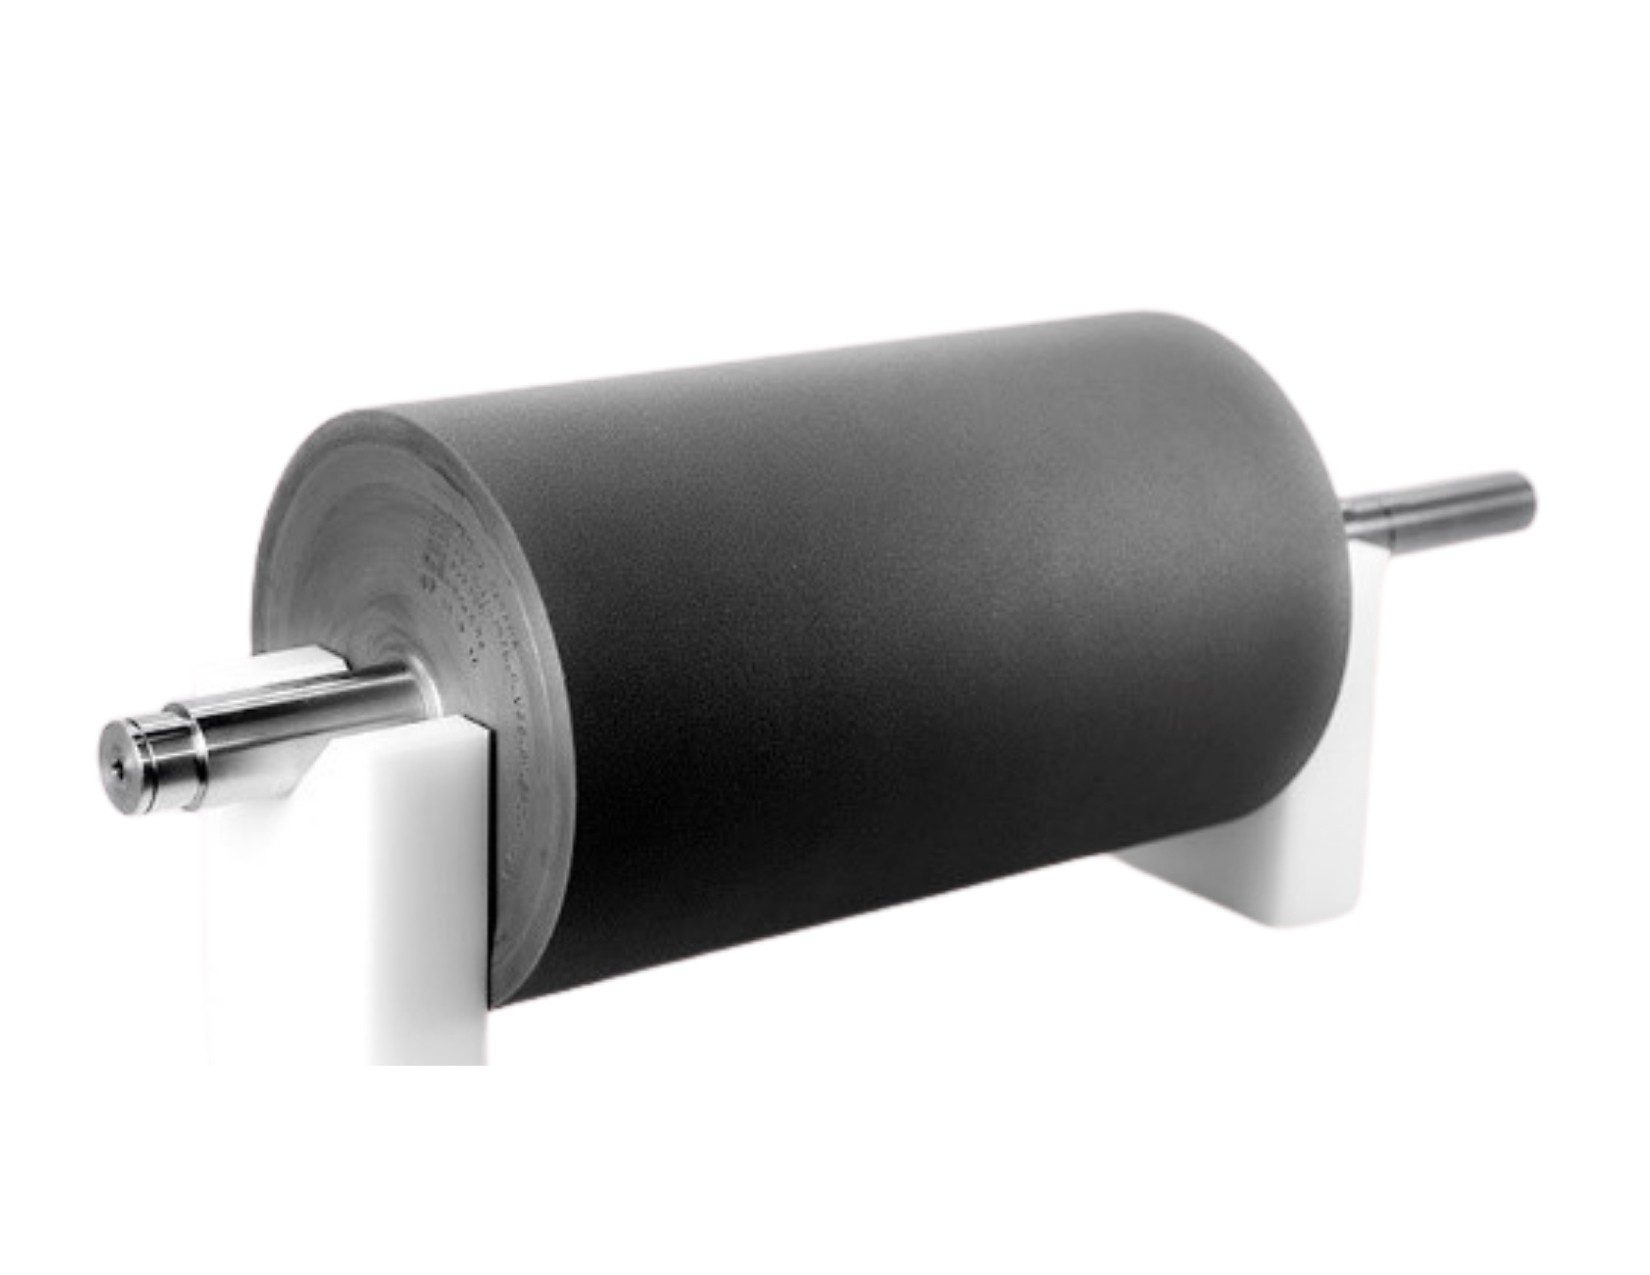 Transport Cylinder with Non-Sticky Coating